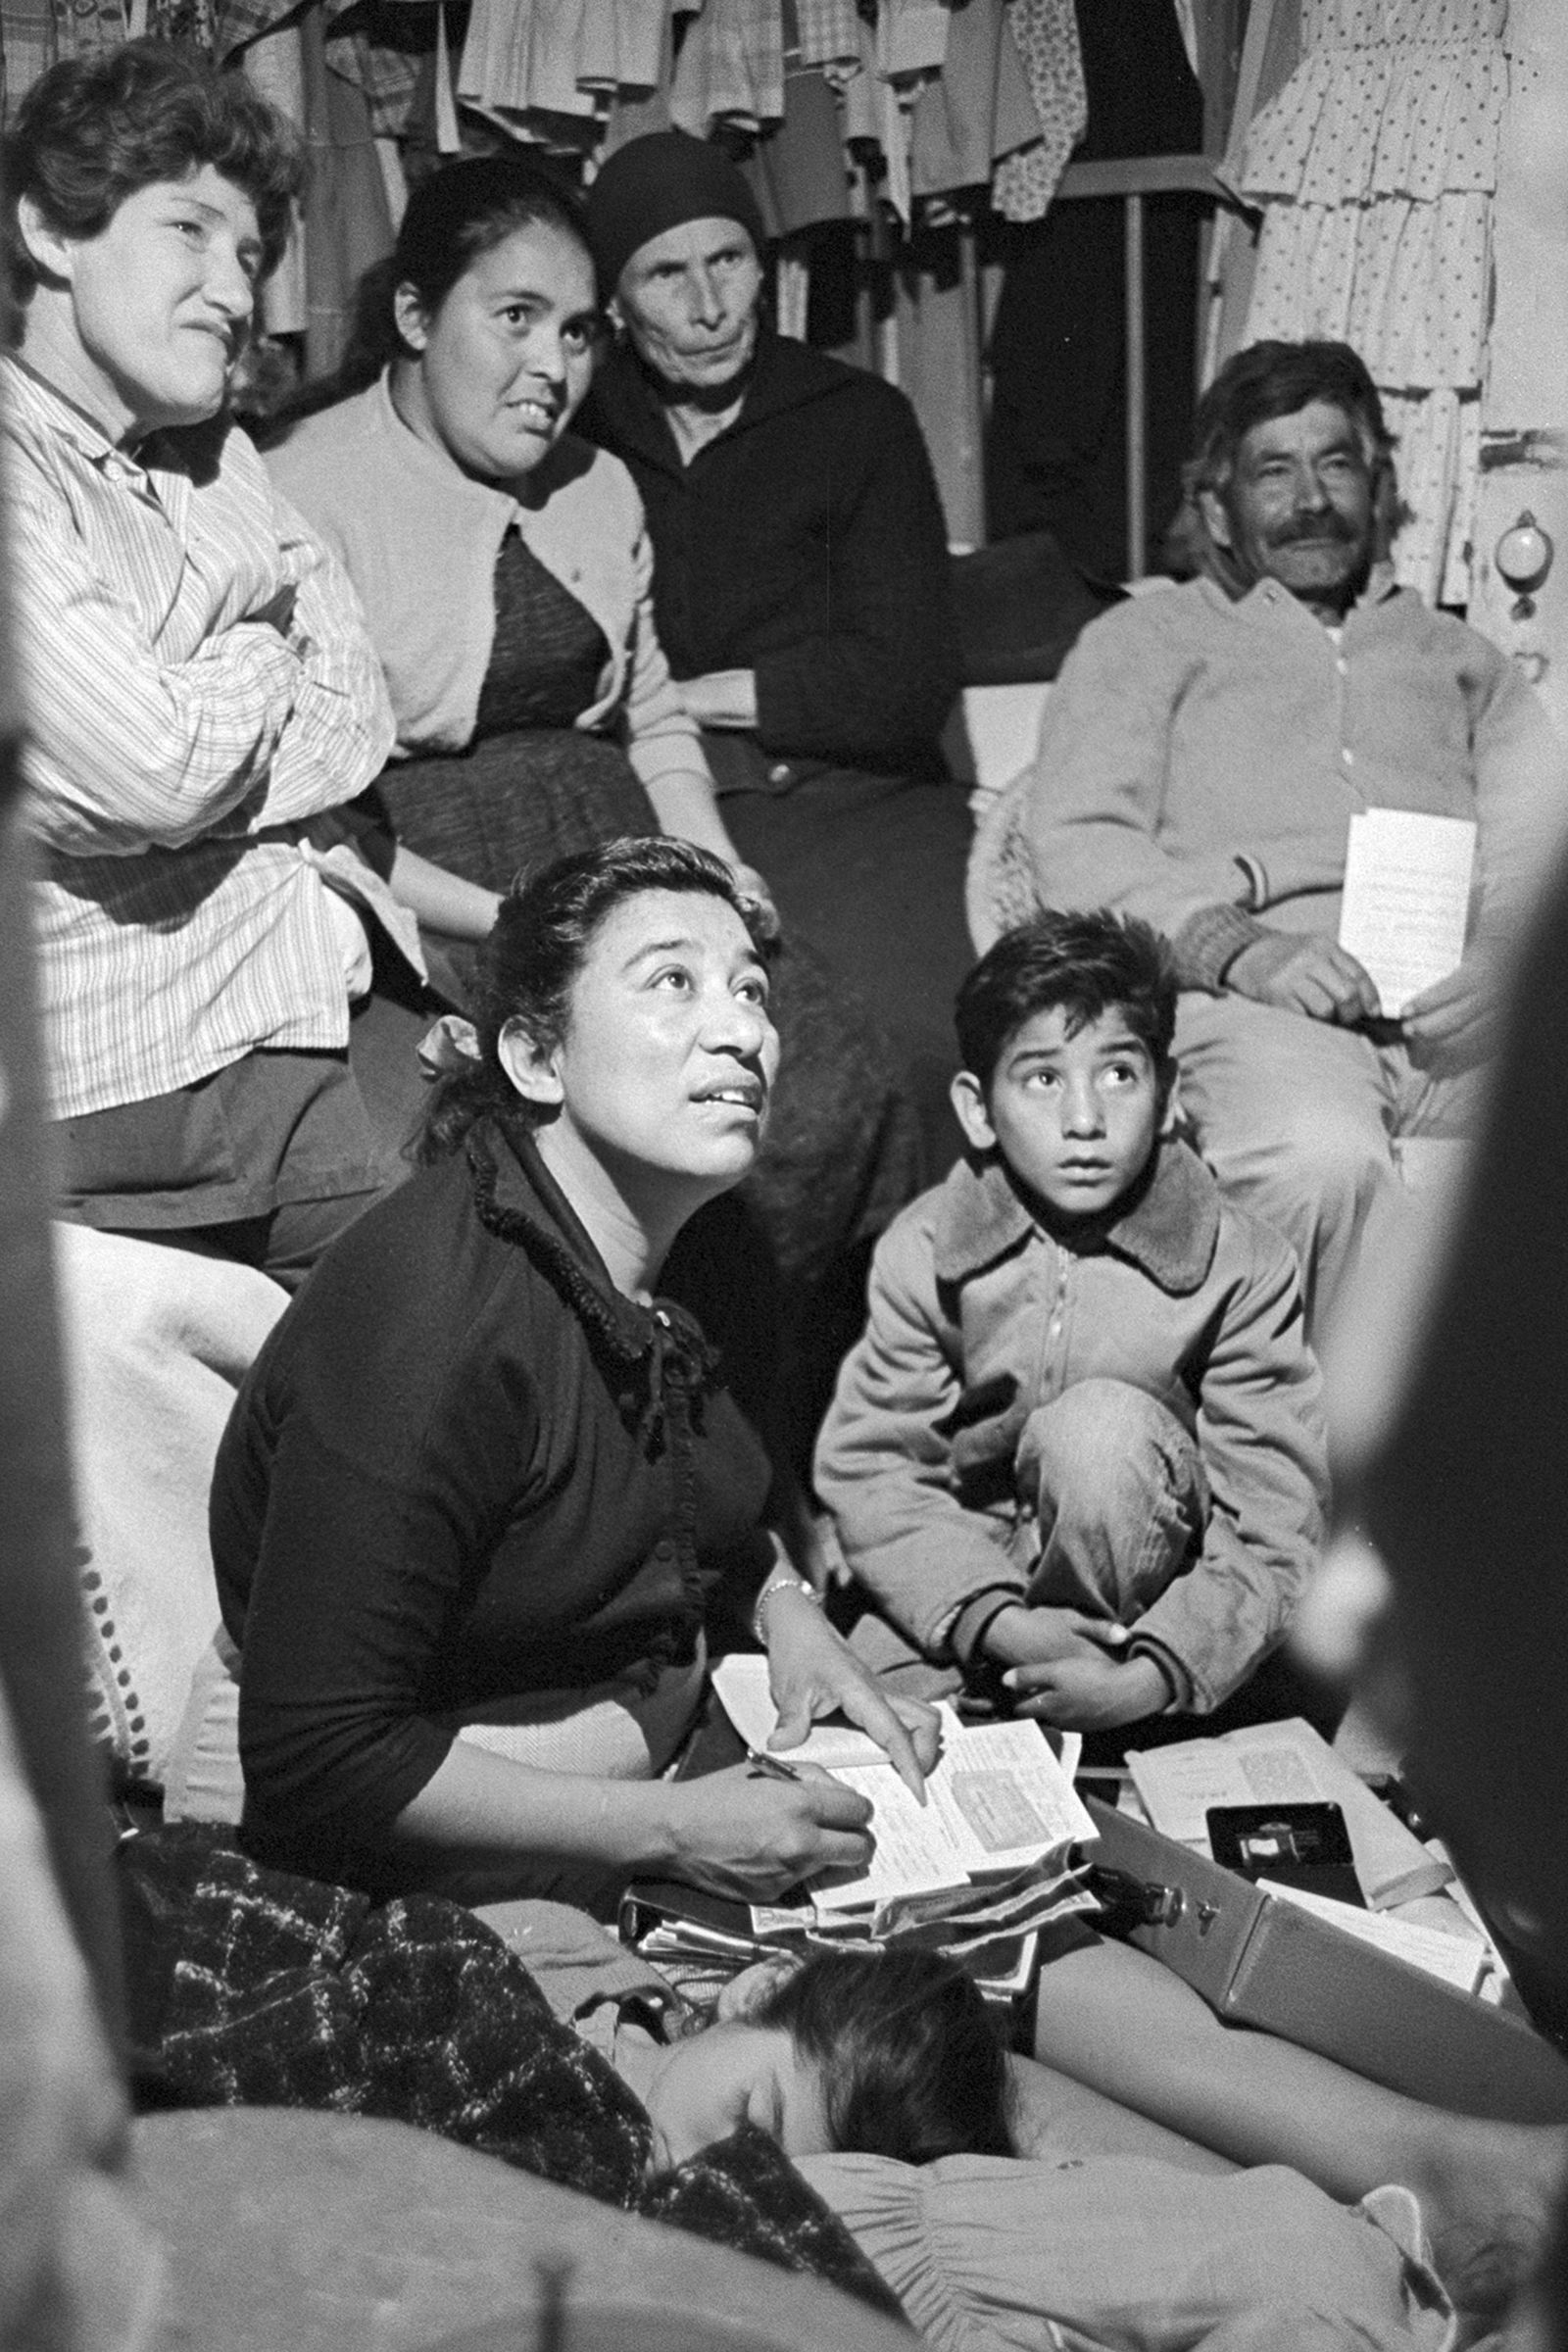 In this undated photo, labor leader Maria Moreno speaks with migrant farmworkers in rural California. (George Ballis/Take Stock via AP)